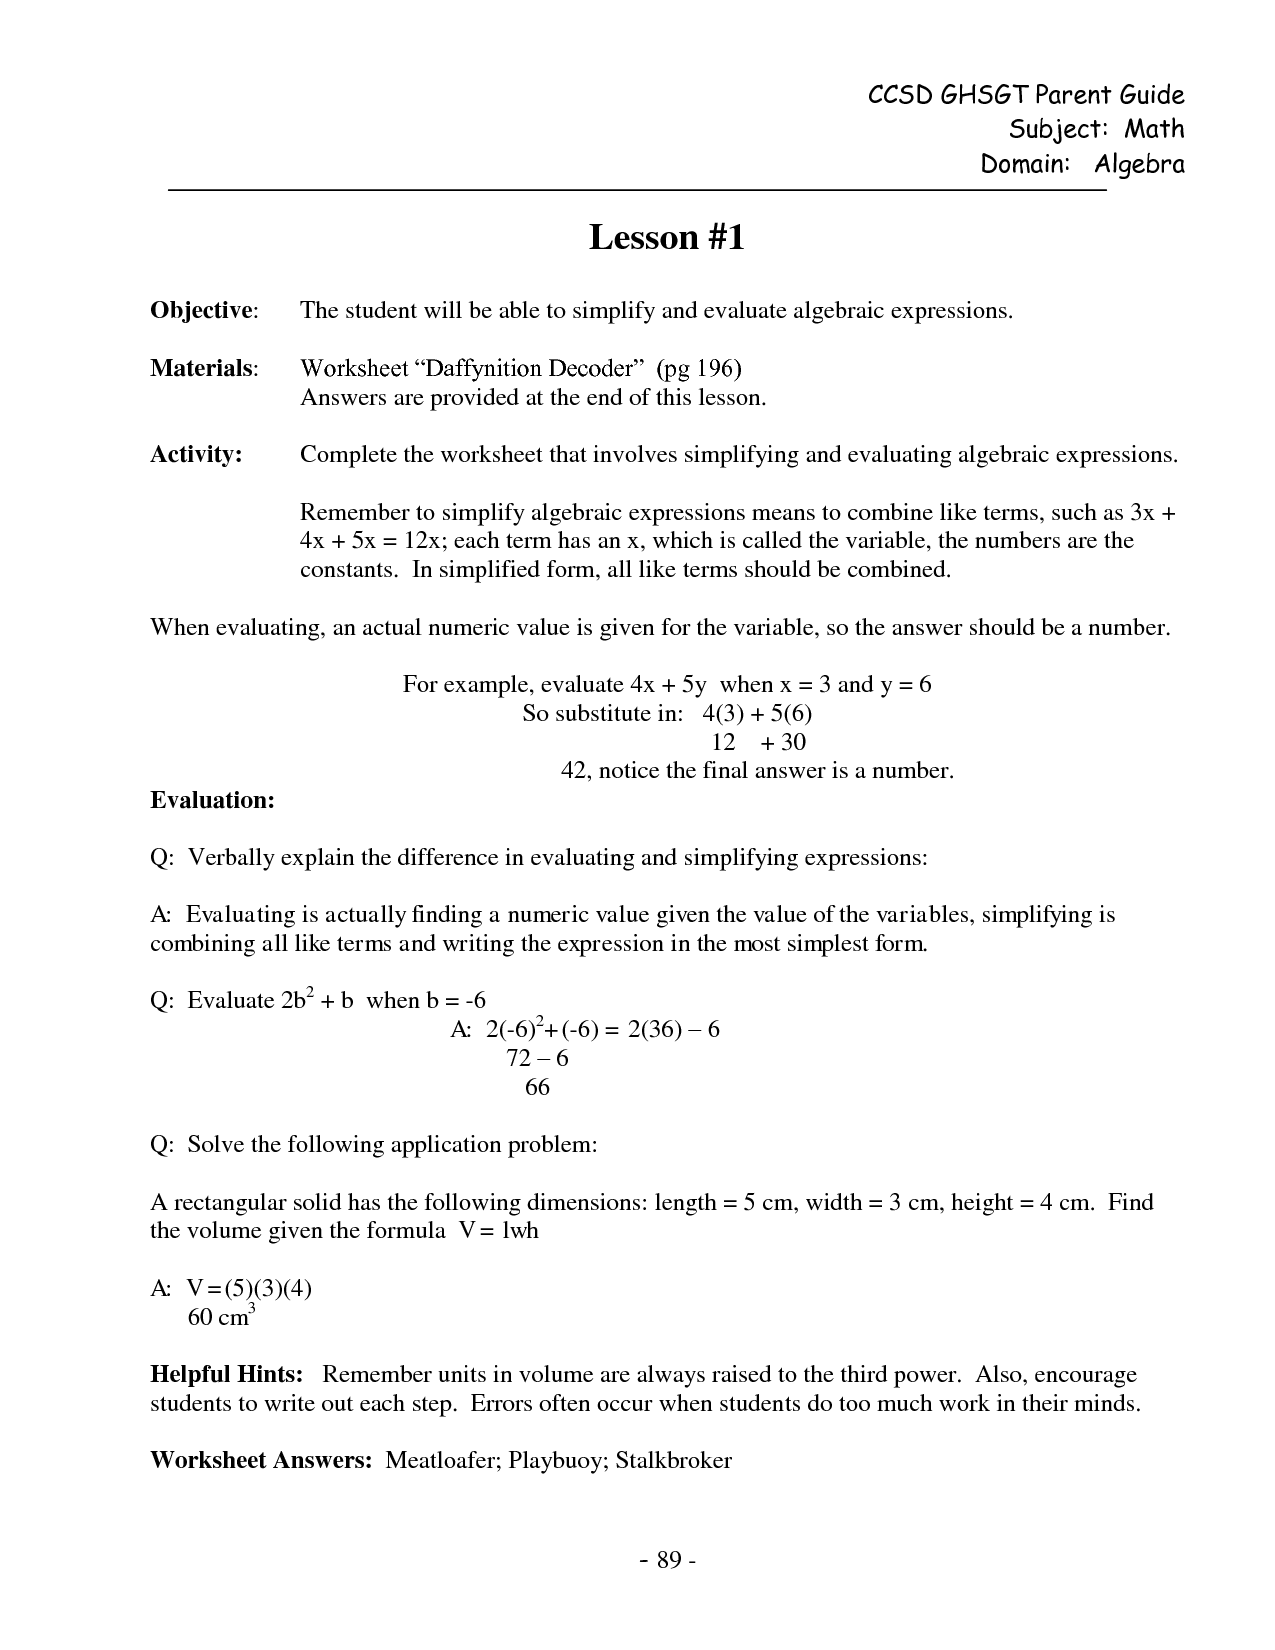 Evaluating Algebraic Expressions Worksheet Kuta